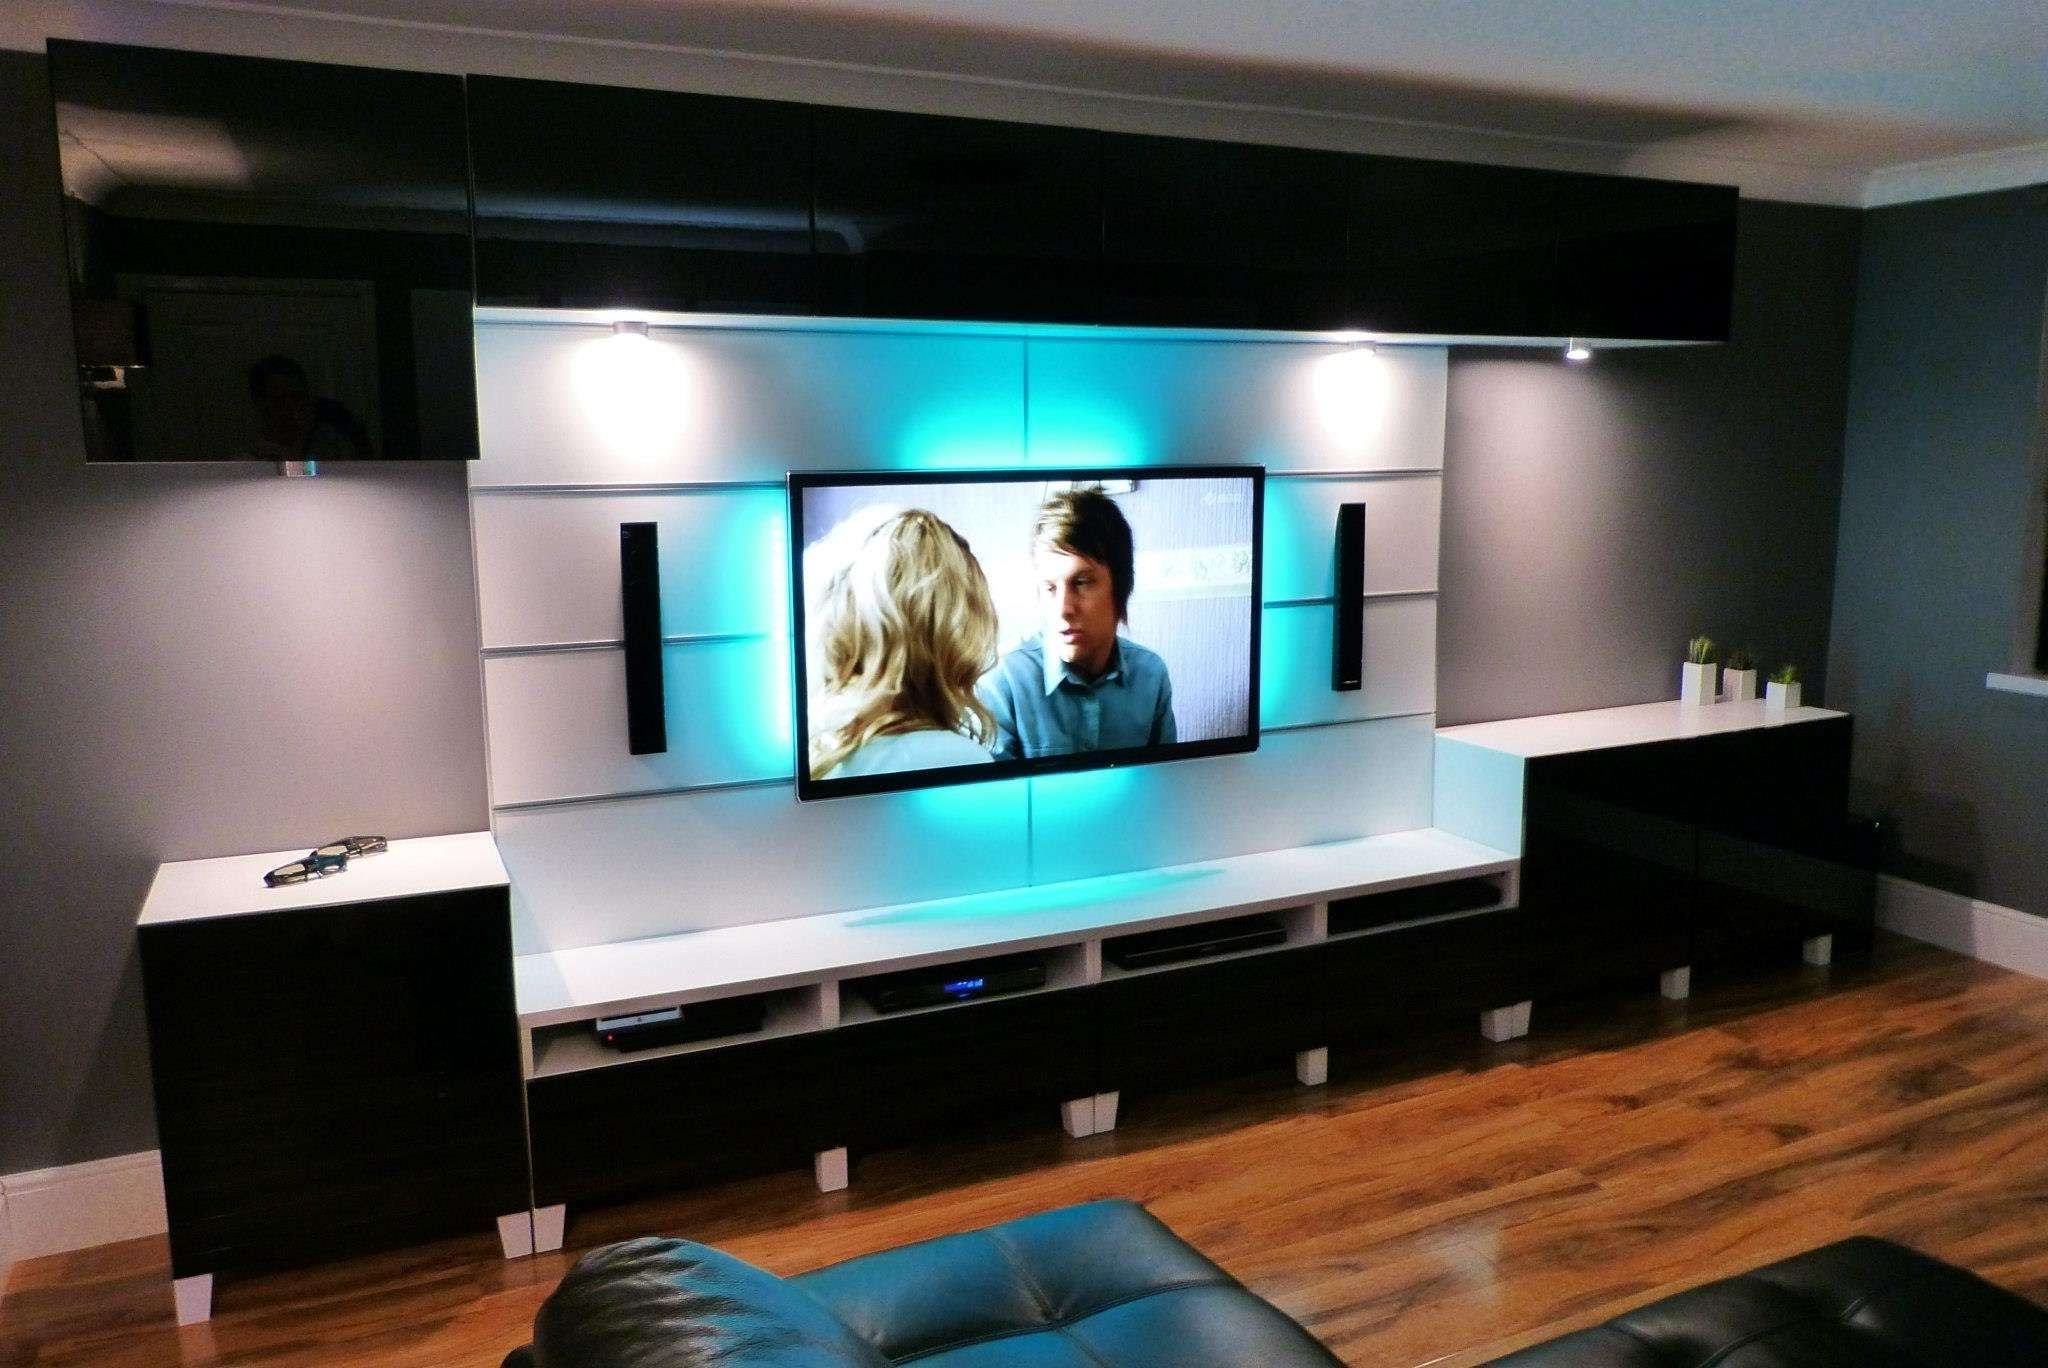 Ikea Besta Tv Stand With Black Wooden Cabinet With White Top And With Regard To Big Tv Cabinets (View 19 of 20)